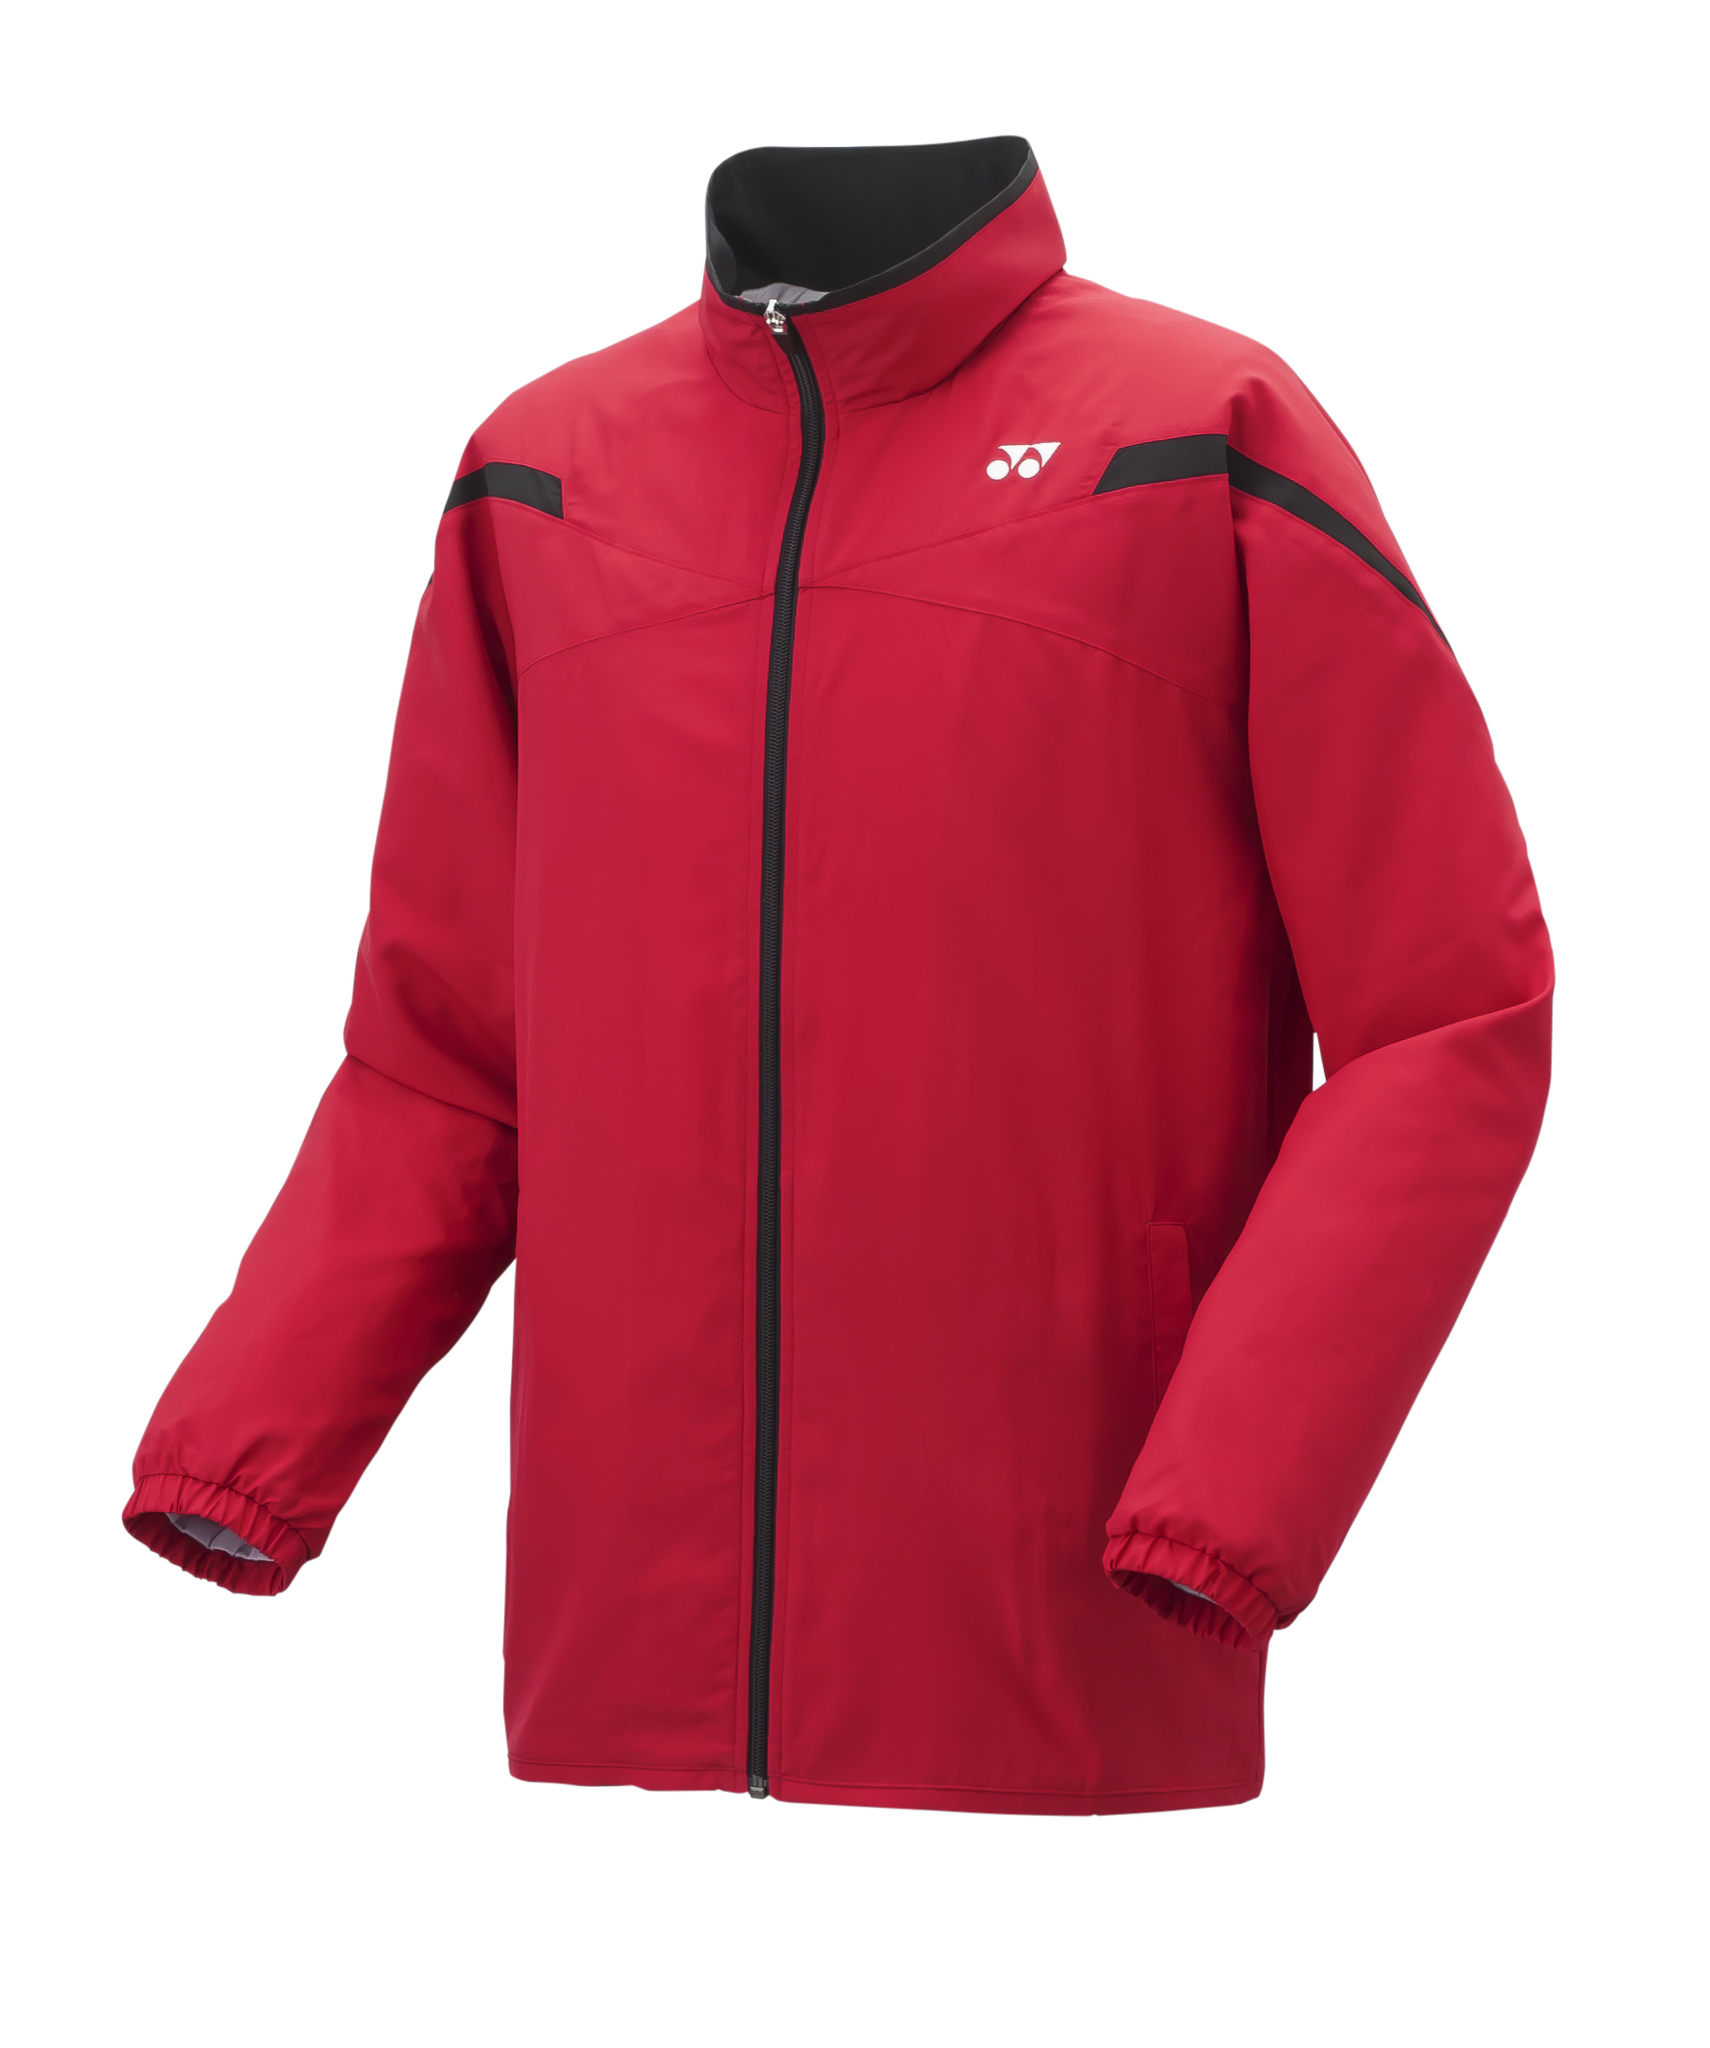 Yonex Mens Warm-Up Jacket 50058 Red